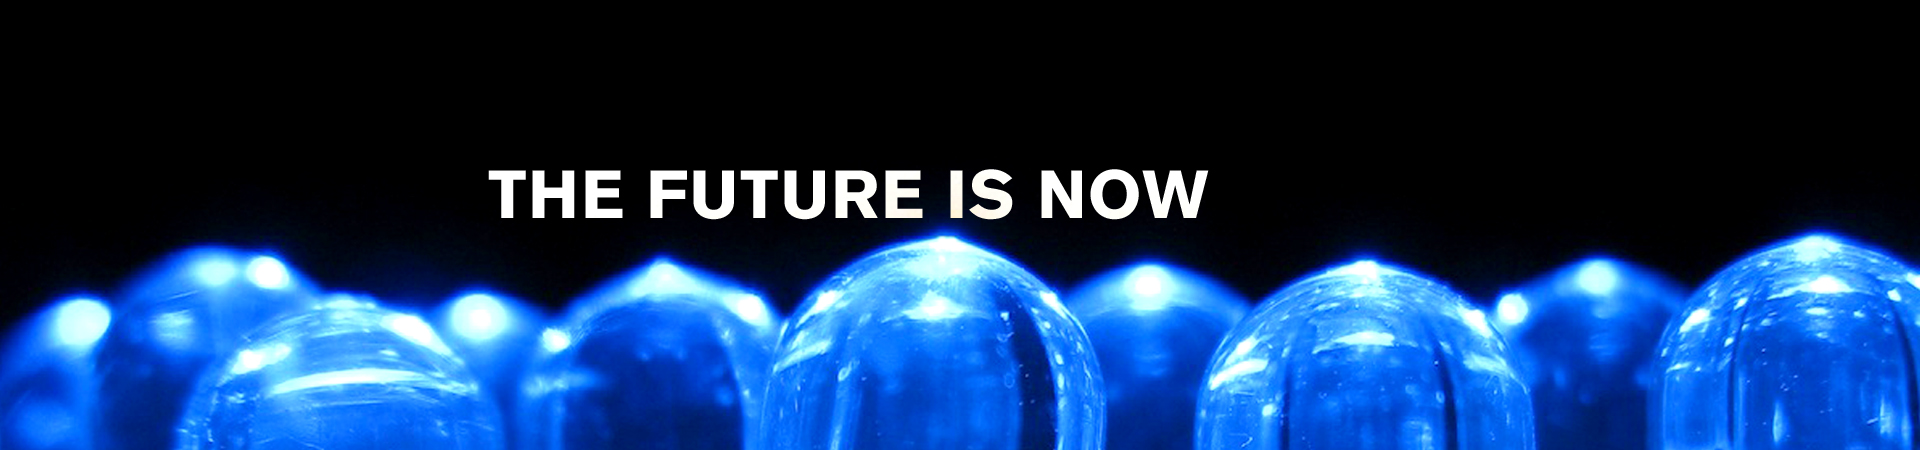 Future Is Now hero image vibrant blue